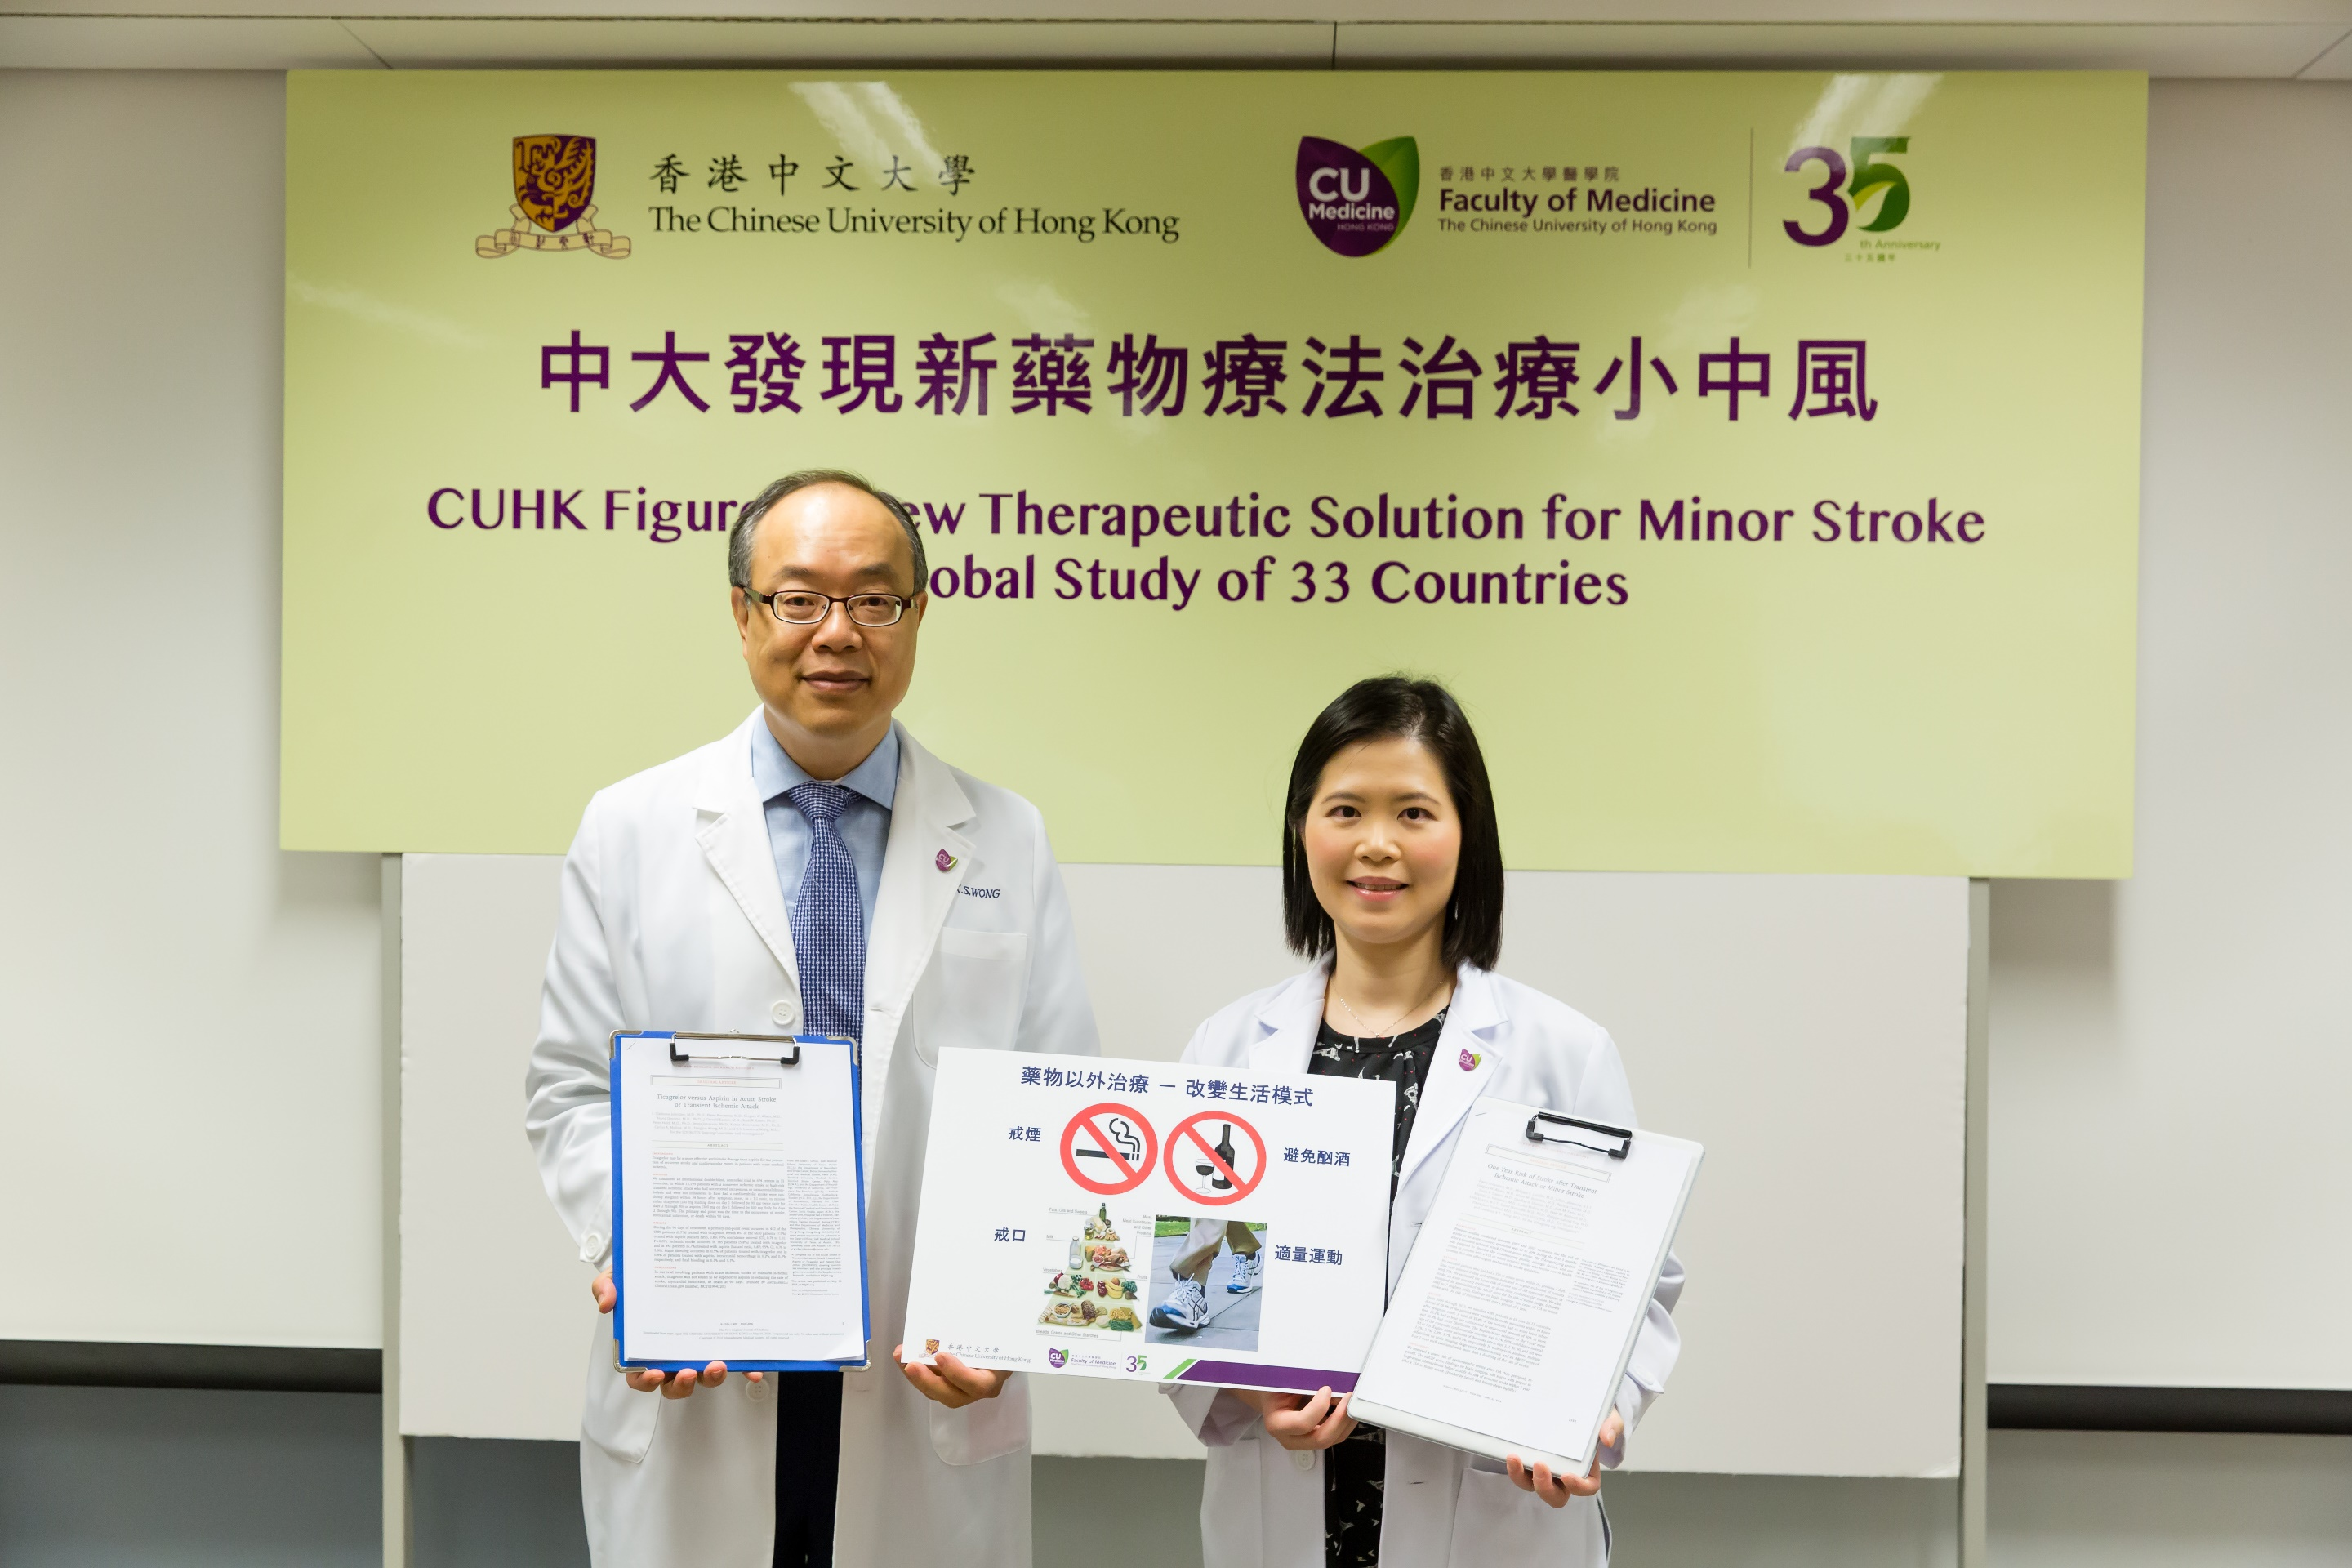 A global study jointly led by CUHK with other neurology centres